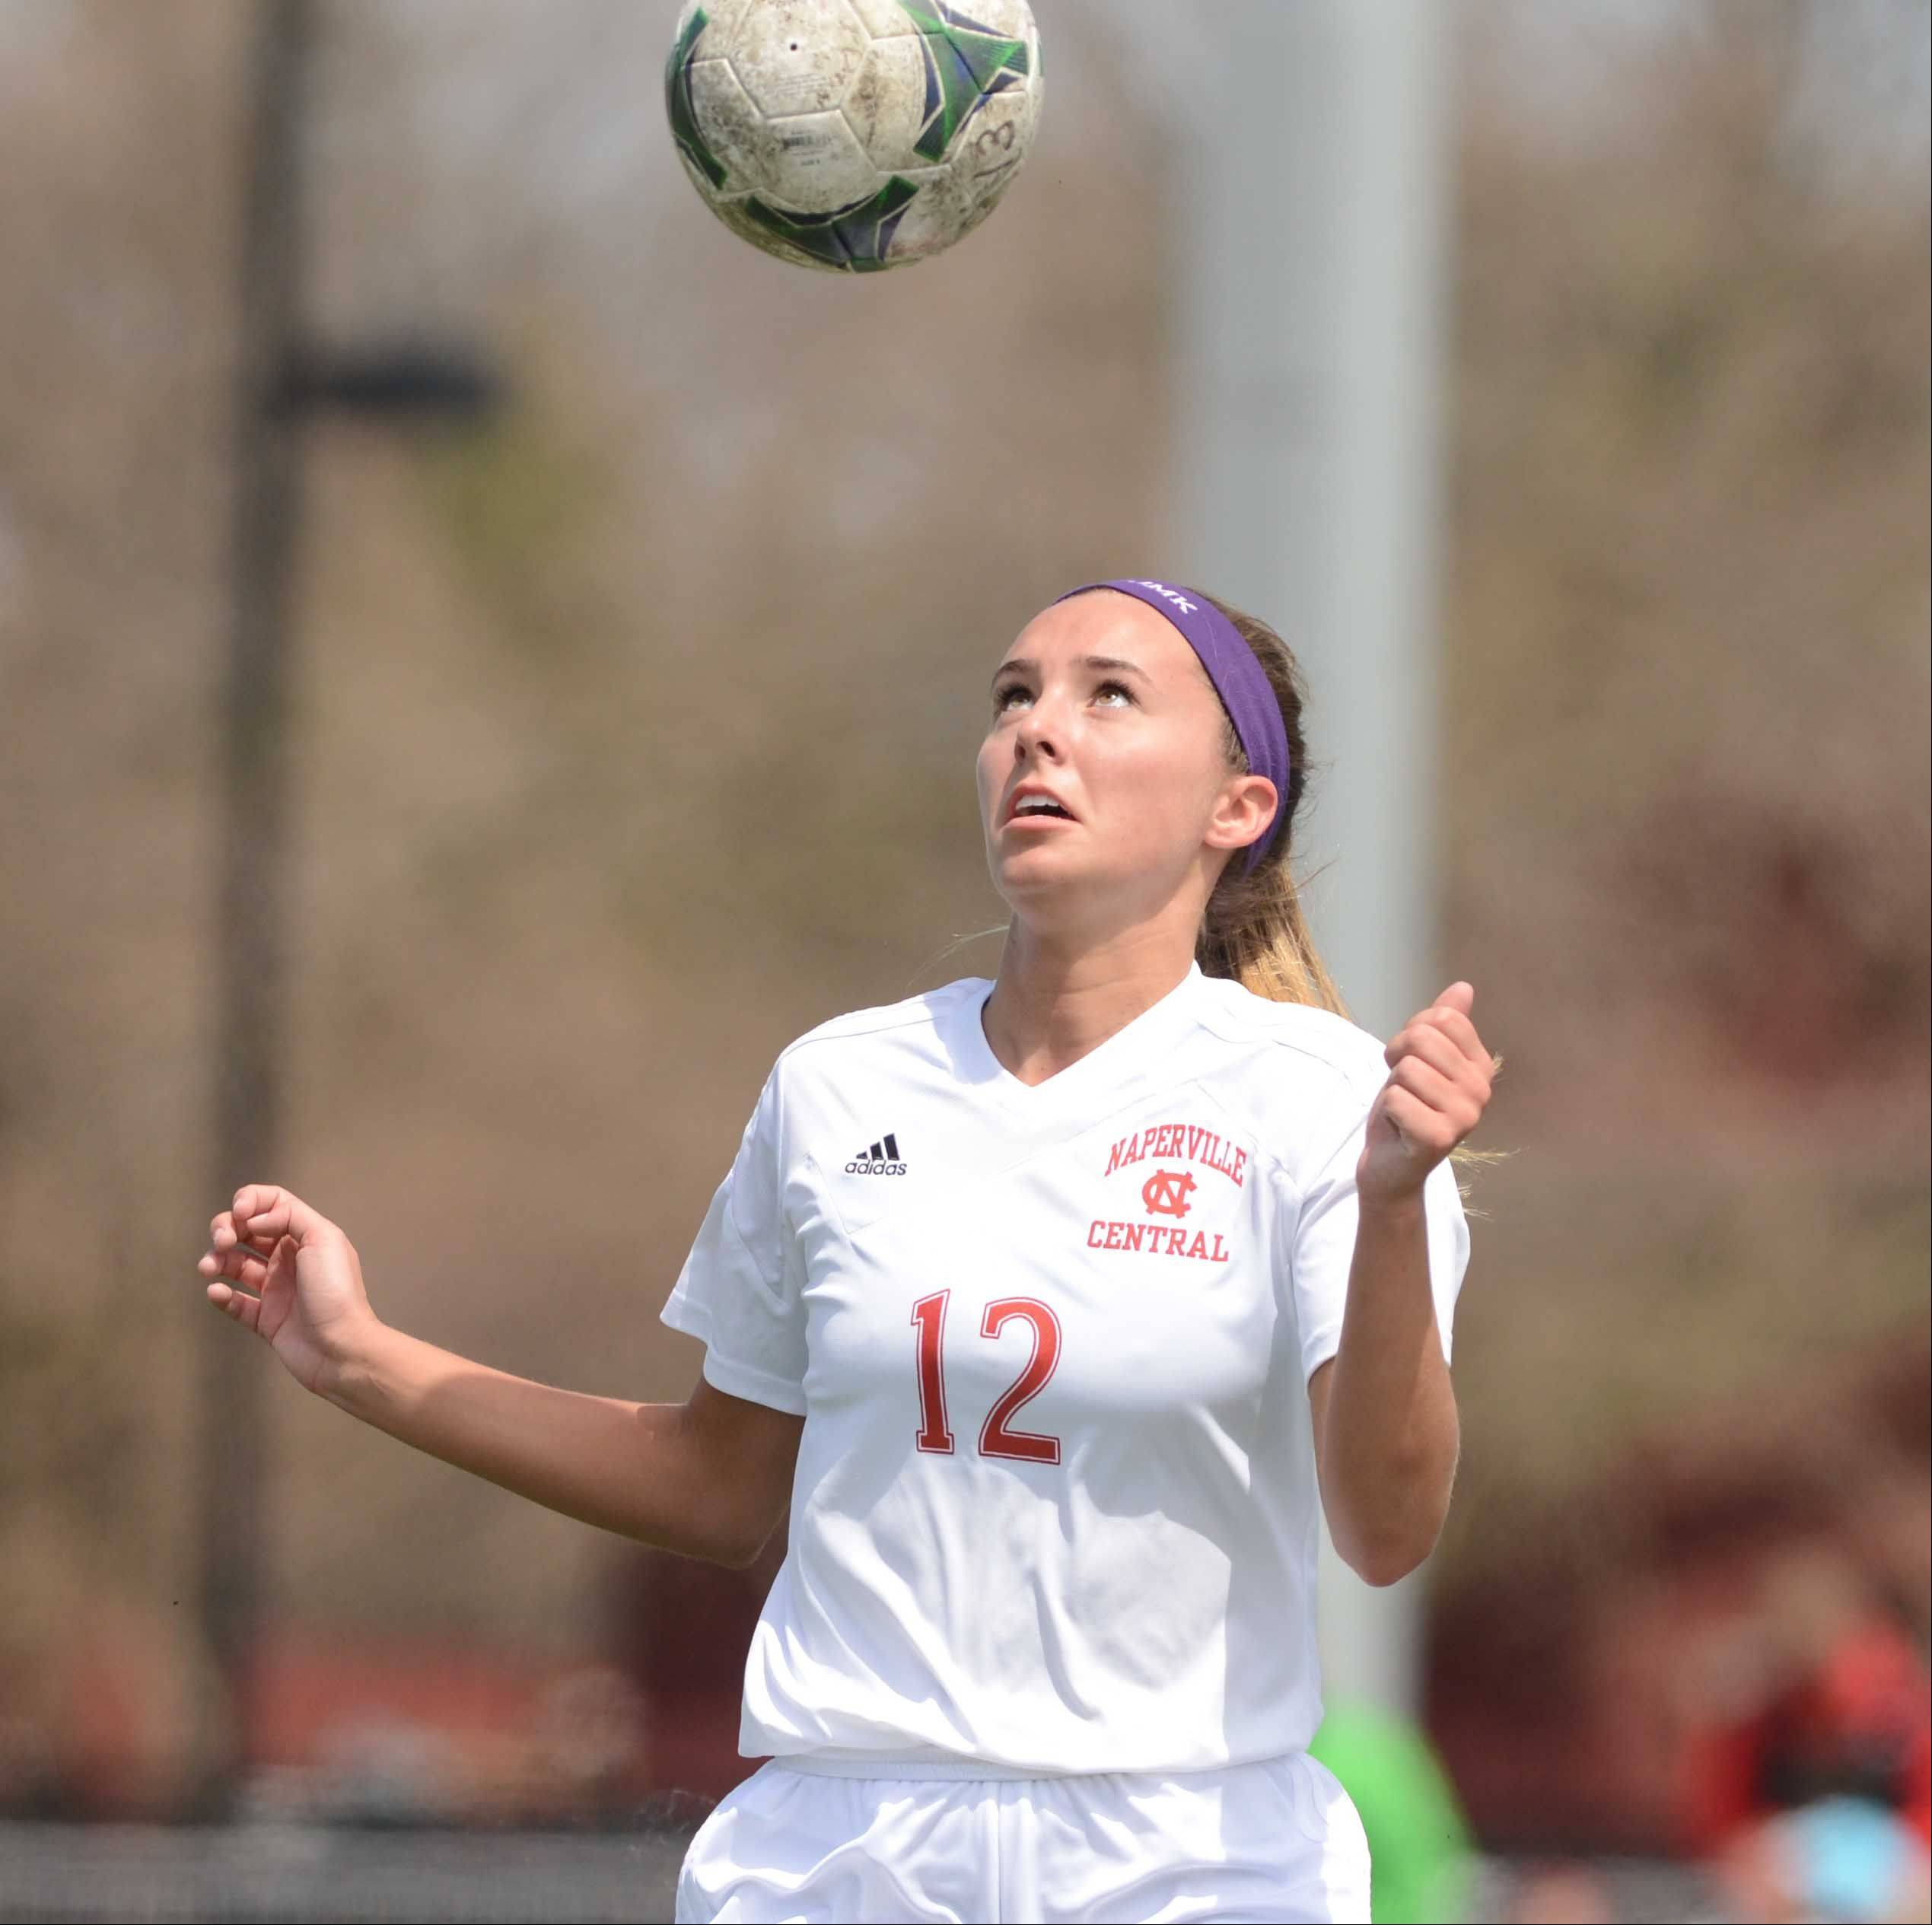 Veronica Ellis of Naperville Central lines up a ball to head during the Naperville Invitational Championship game Saturday. They played Naperville North.